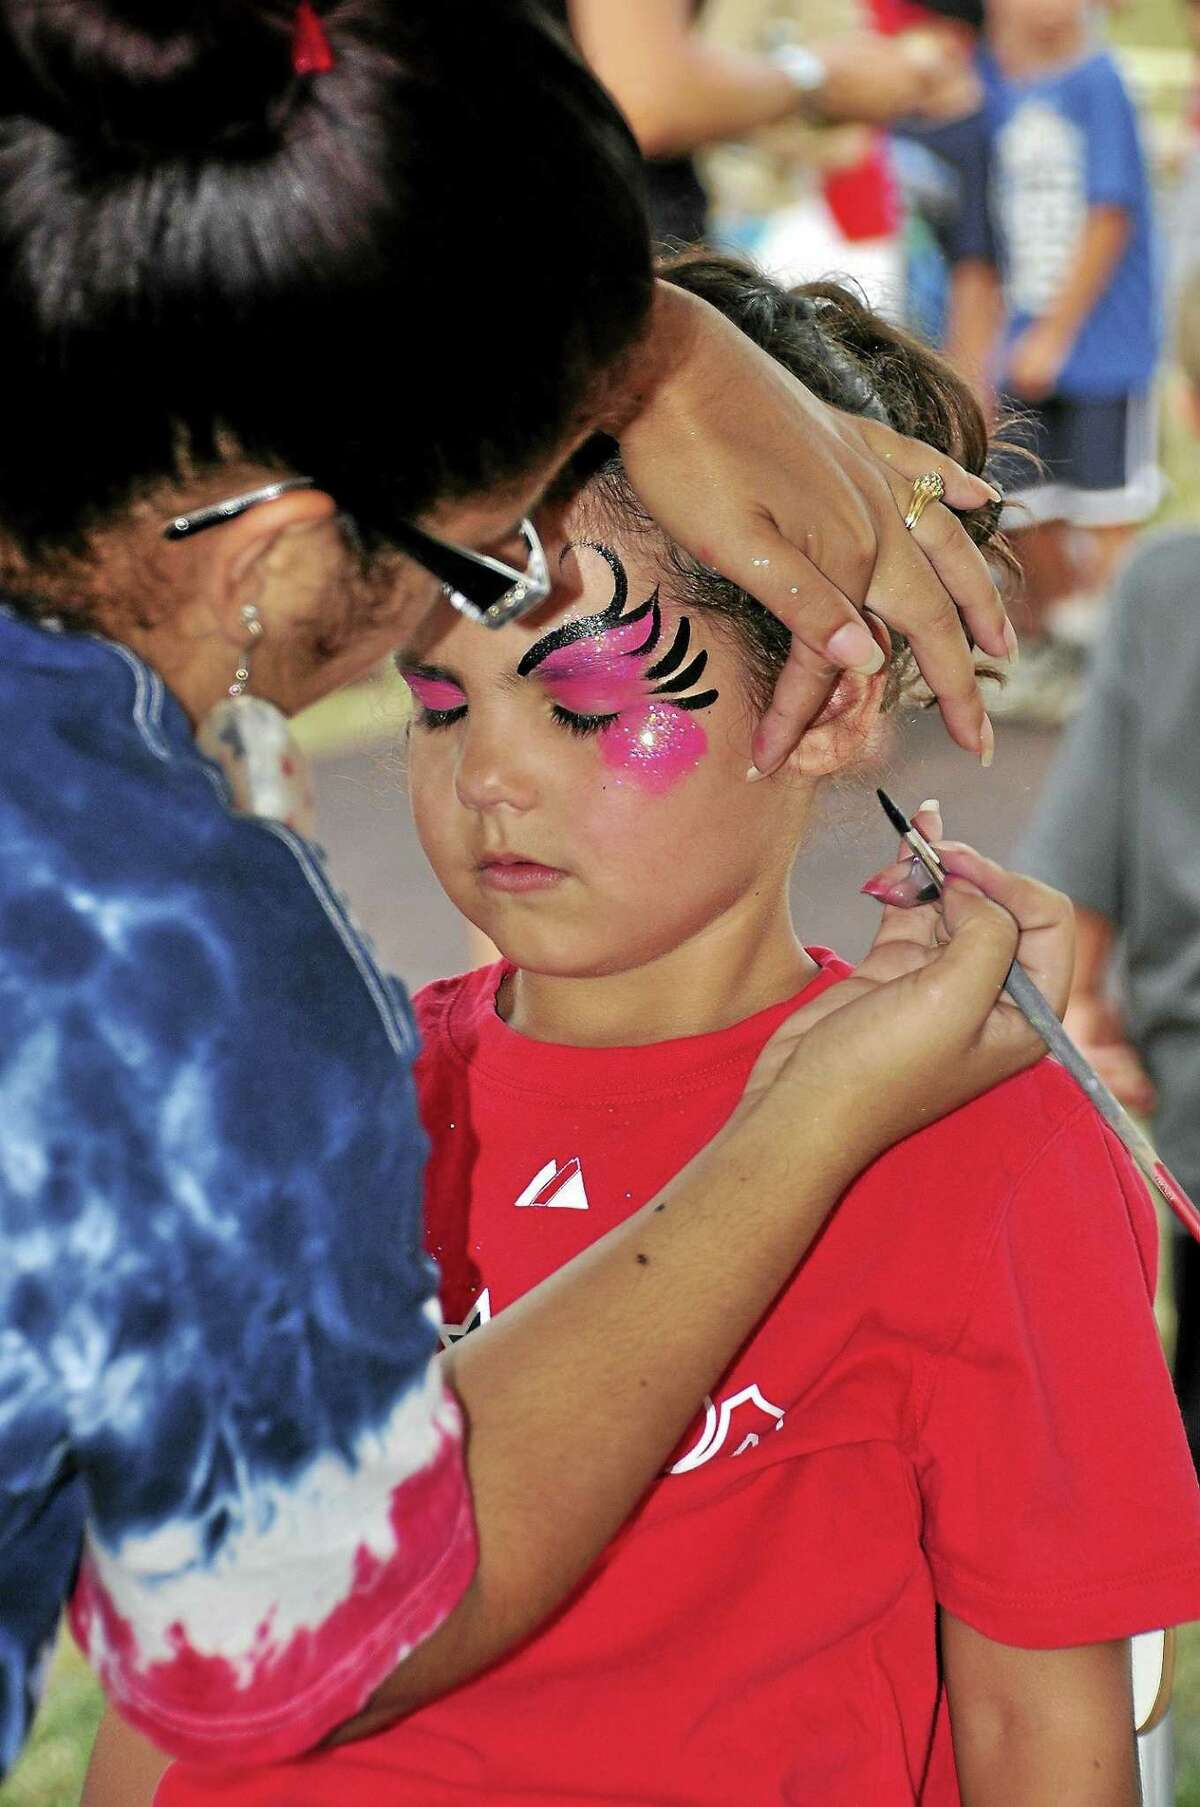 Middletown's Health & Safety Day Saturday will include face painting for children.